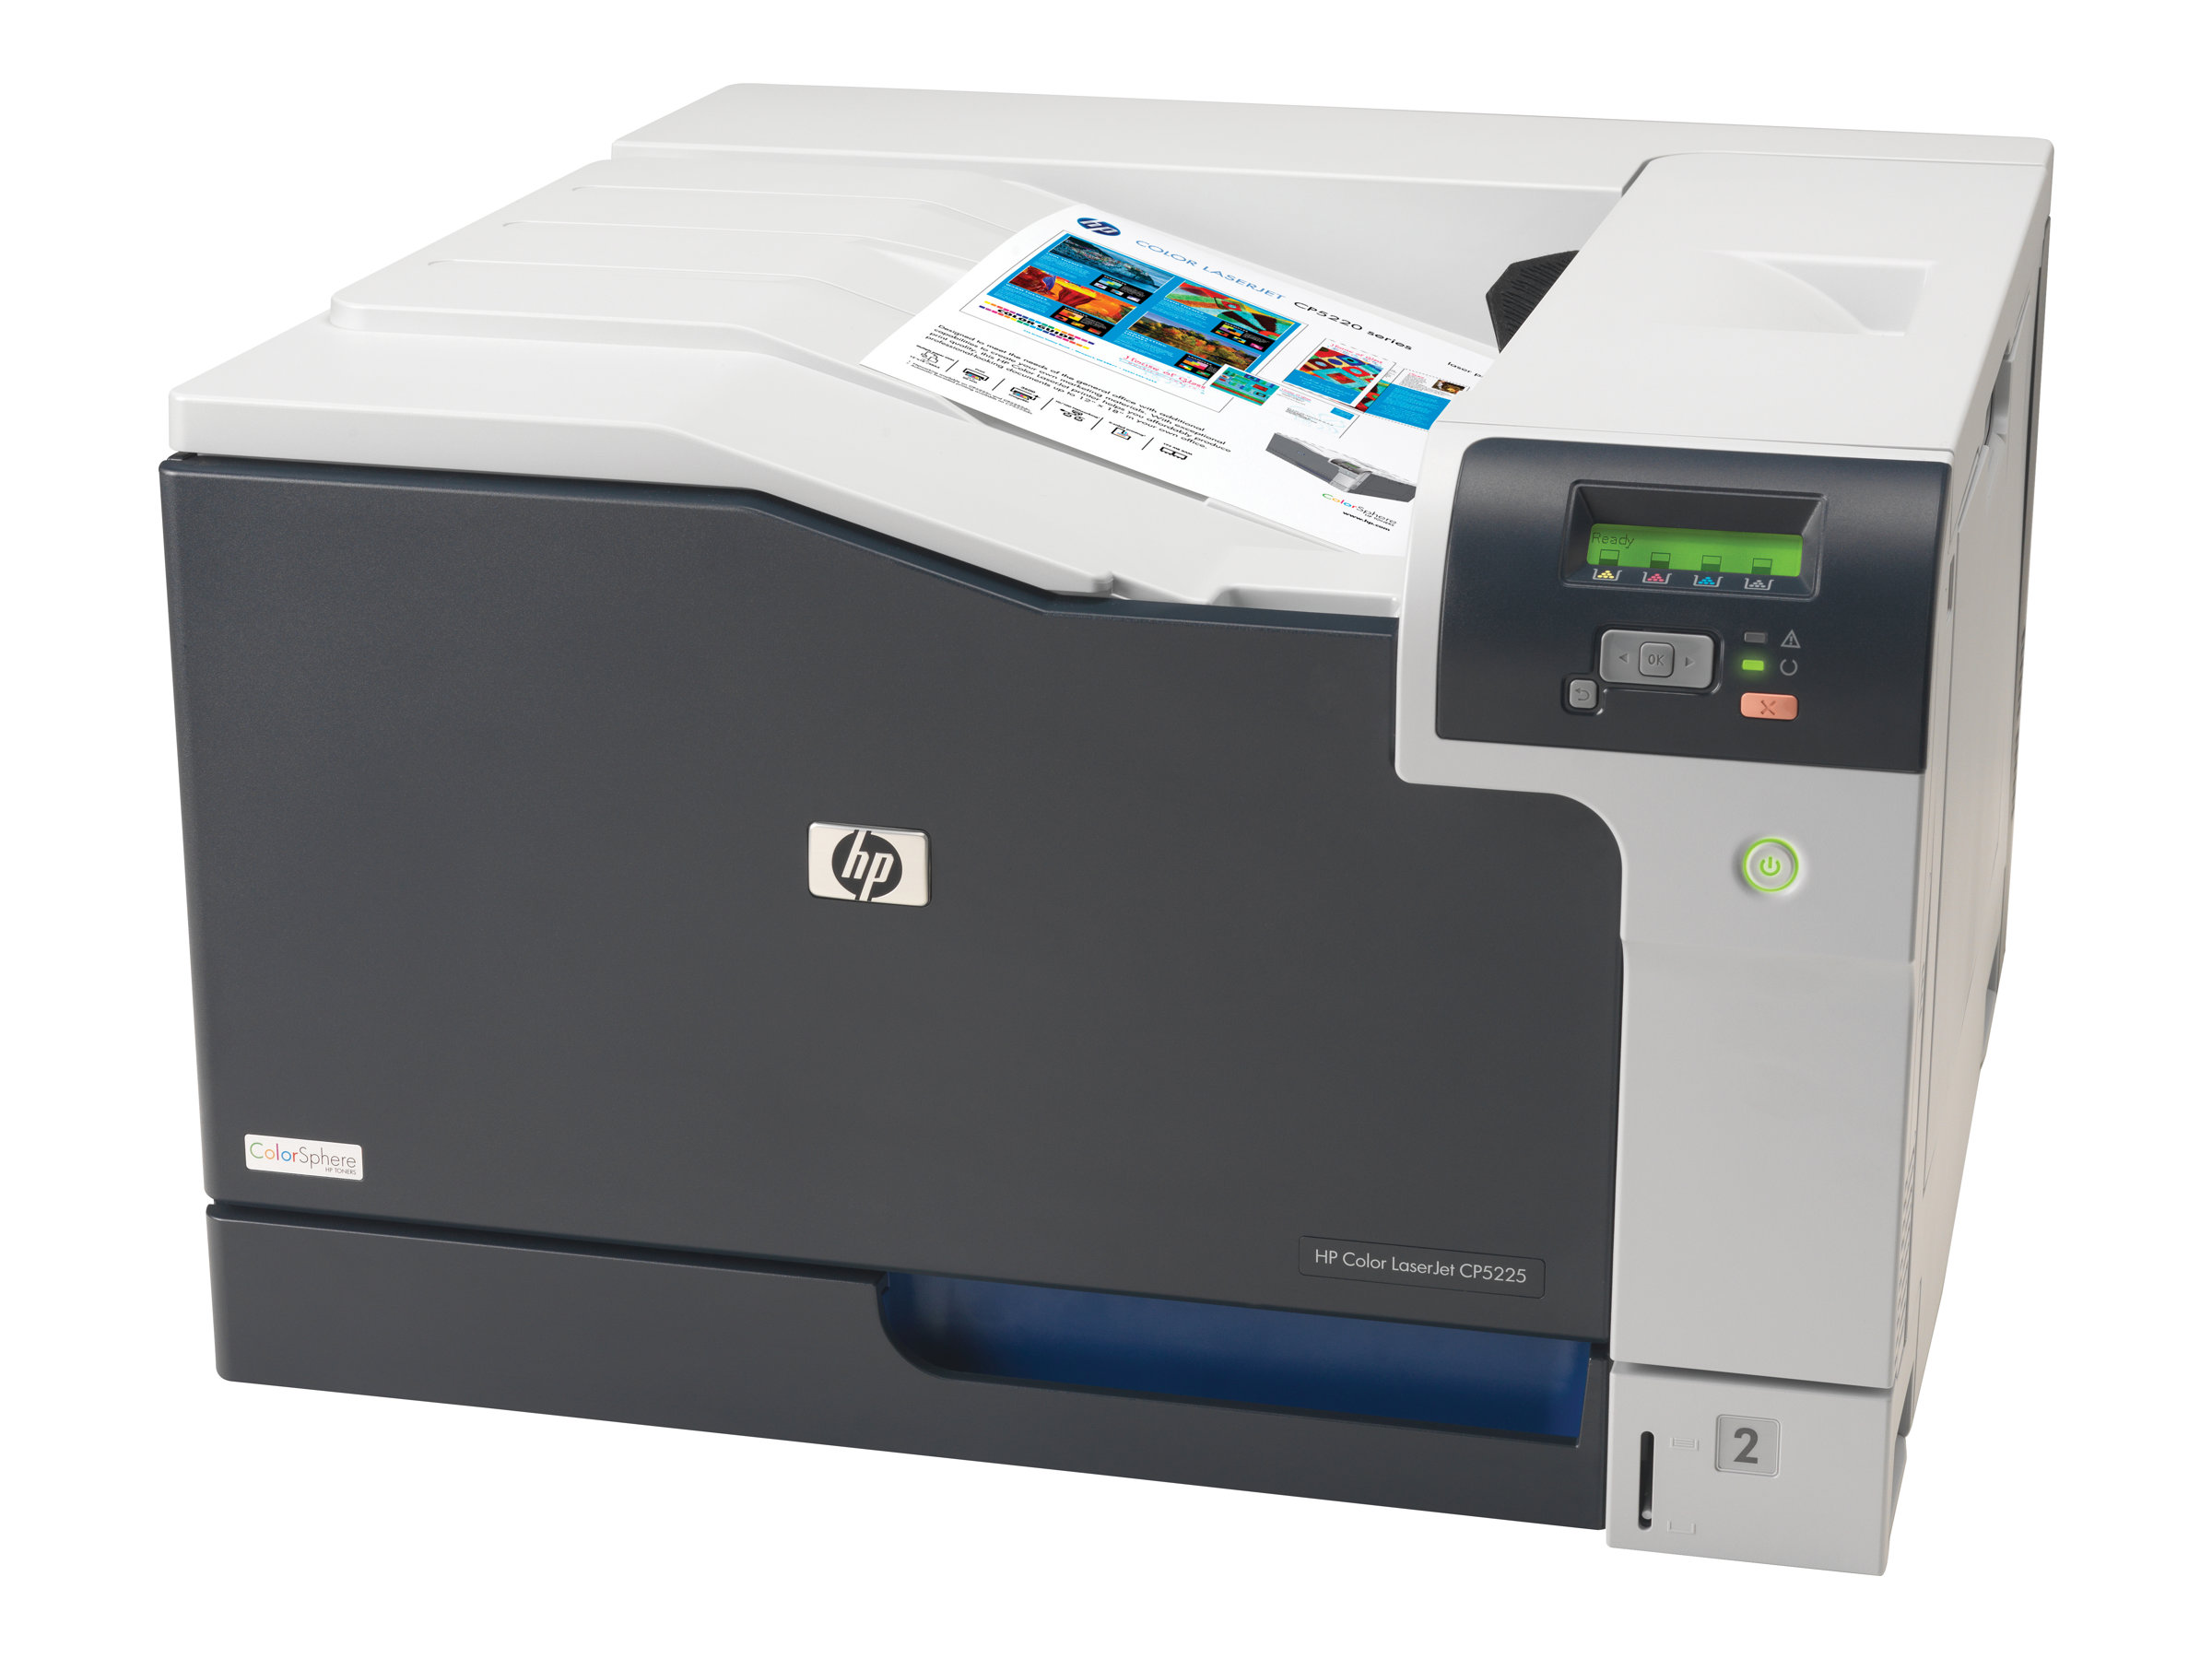 HP Color LaserJet Professional CP5225 - printer - color - laser